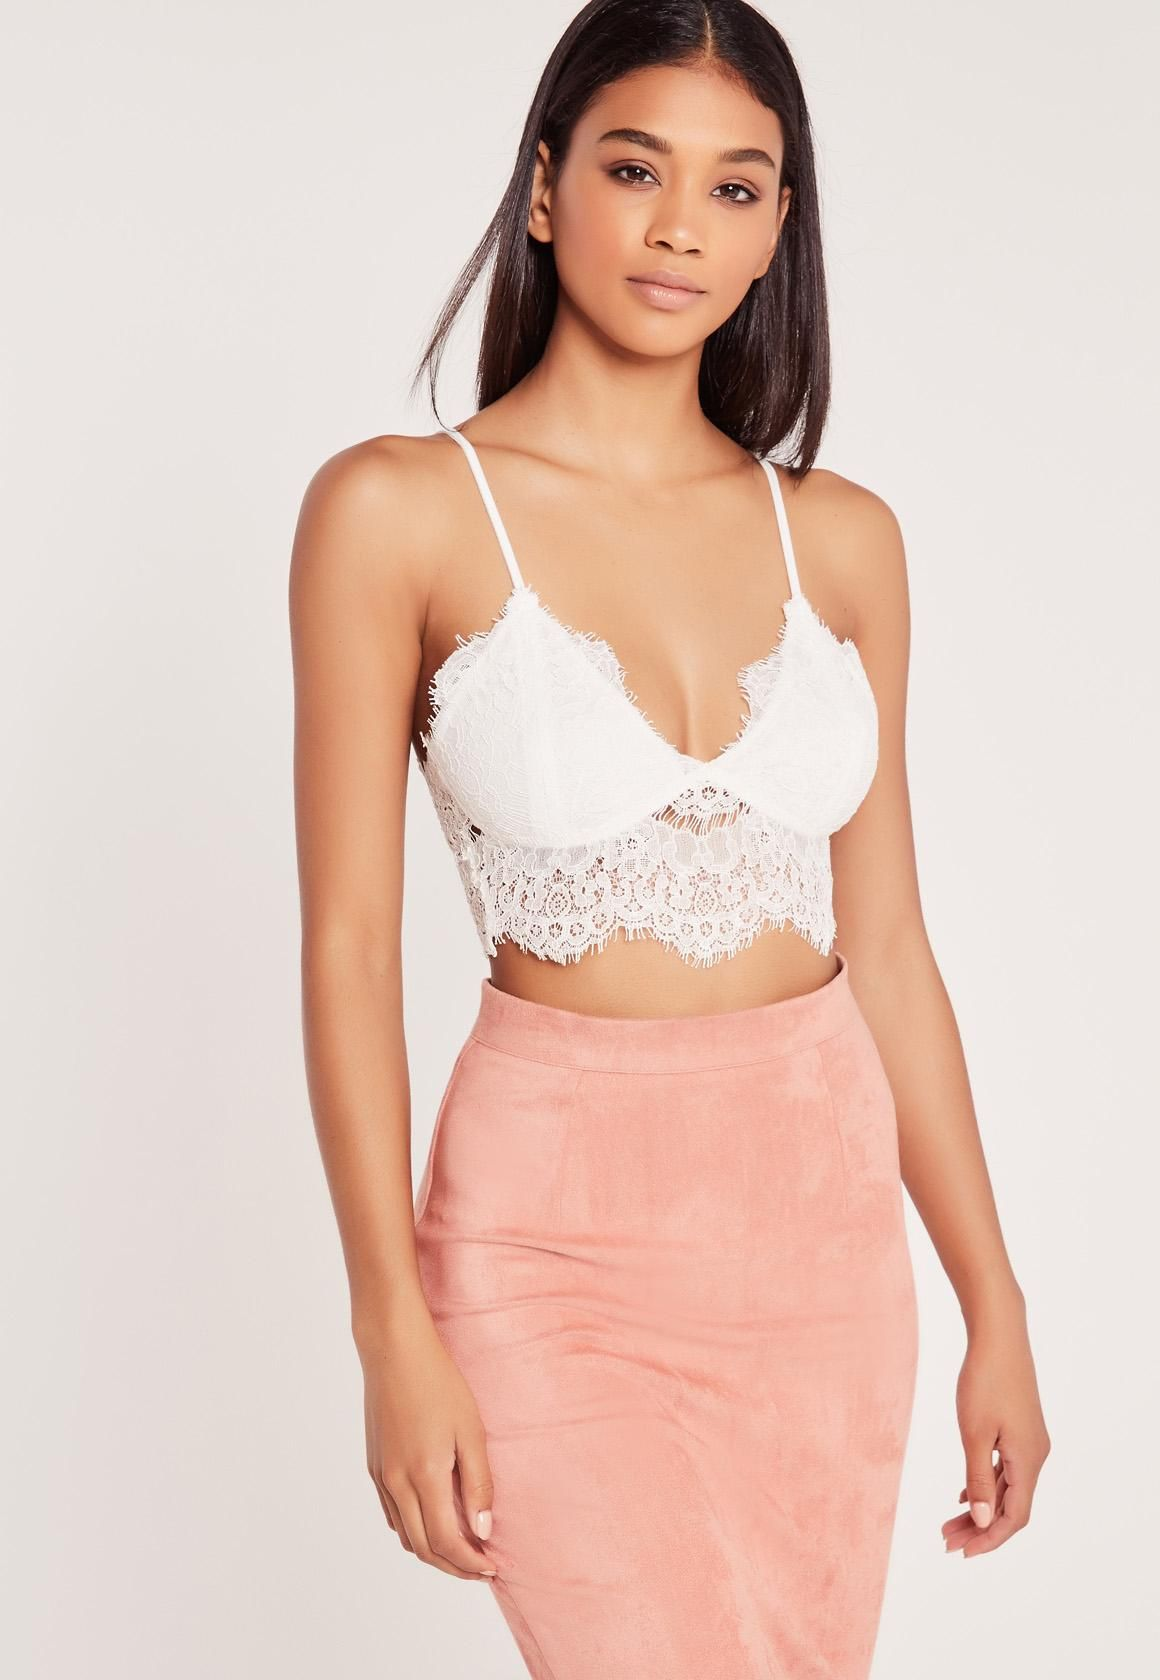 65d2e408eb2 Missguided - Corded Lace Bralette White | Outfit | Bralette tops ...